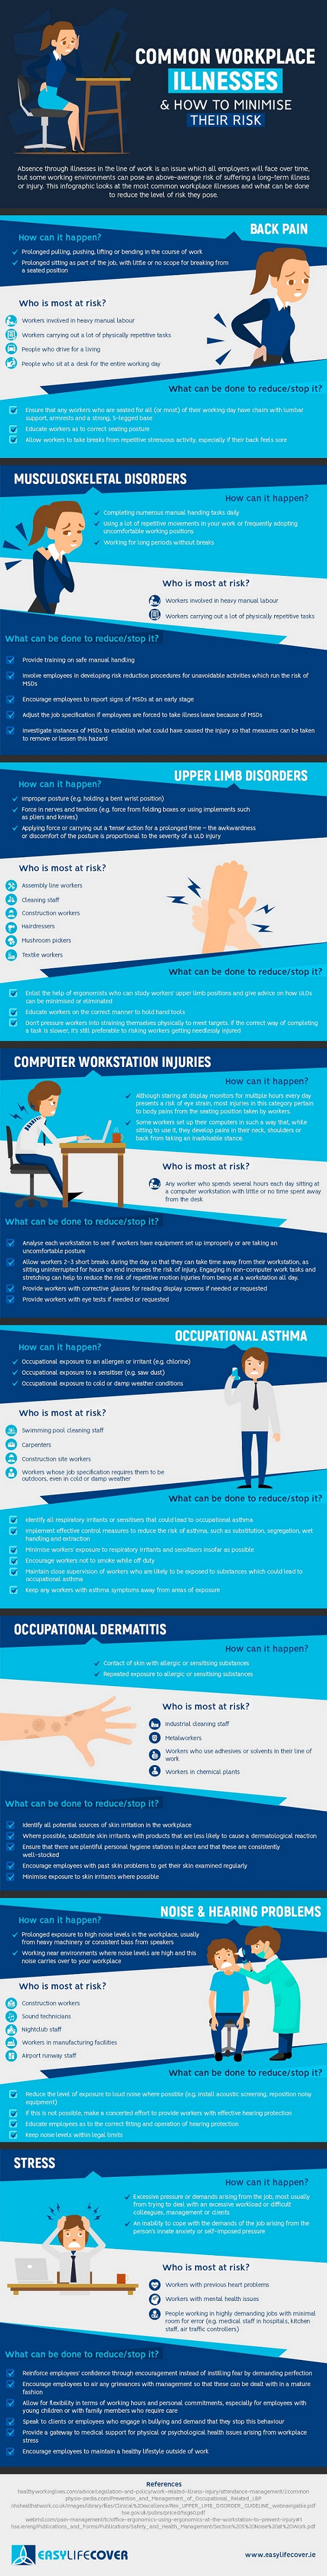 Workplace injury and illness infographic